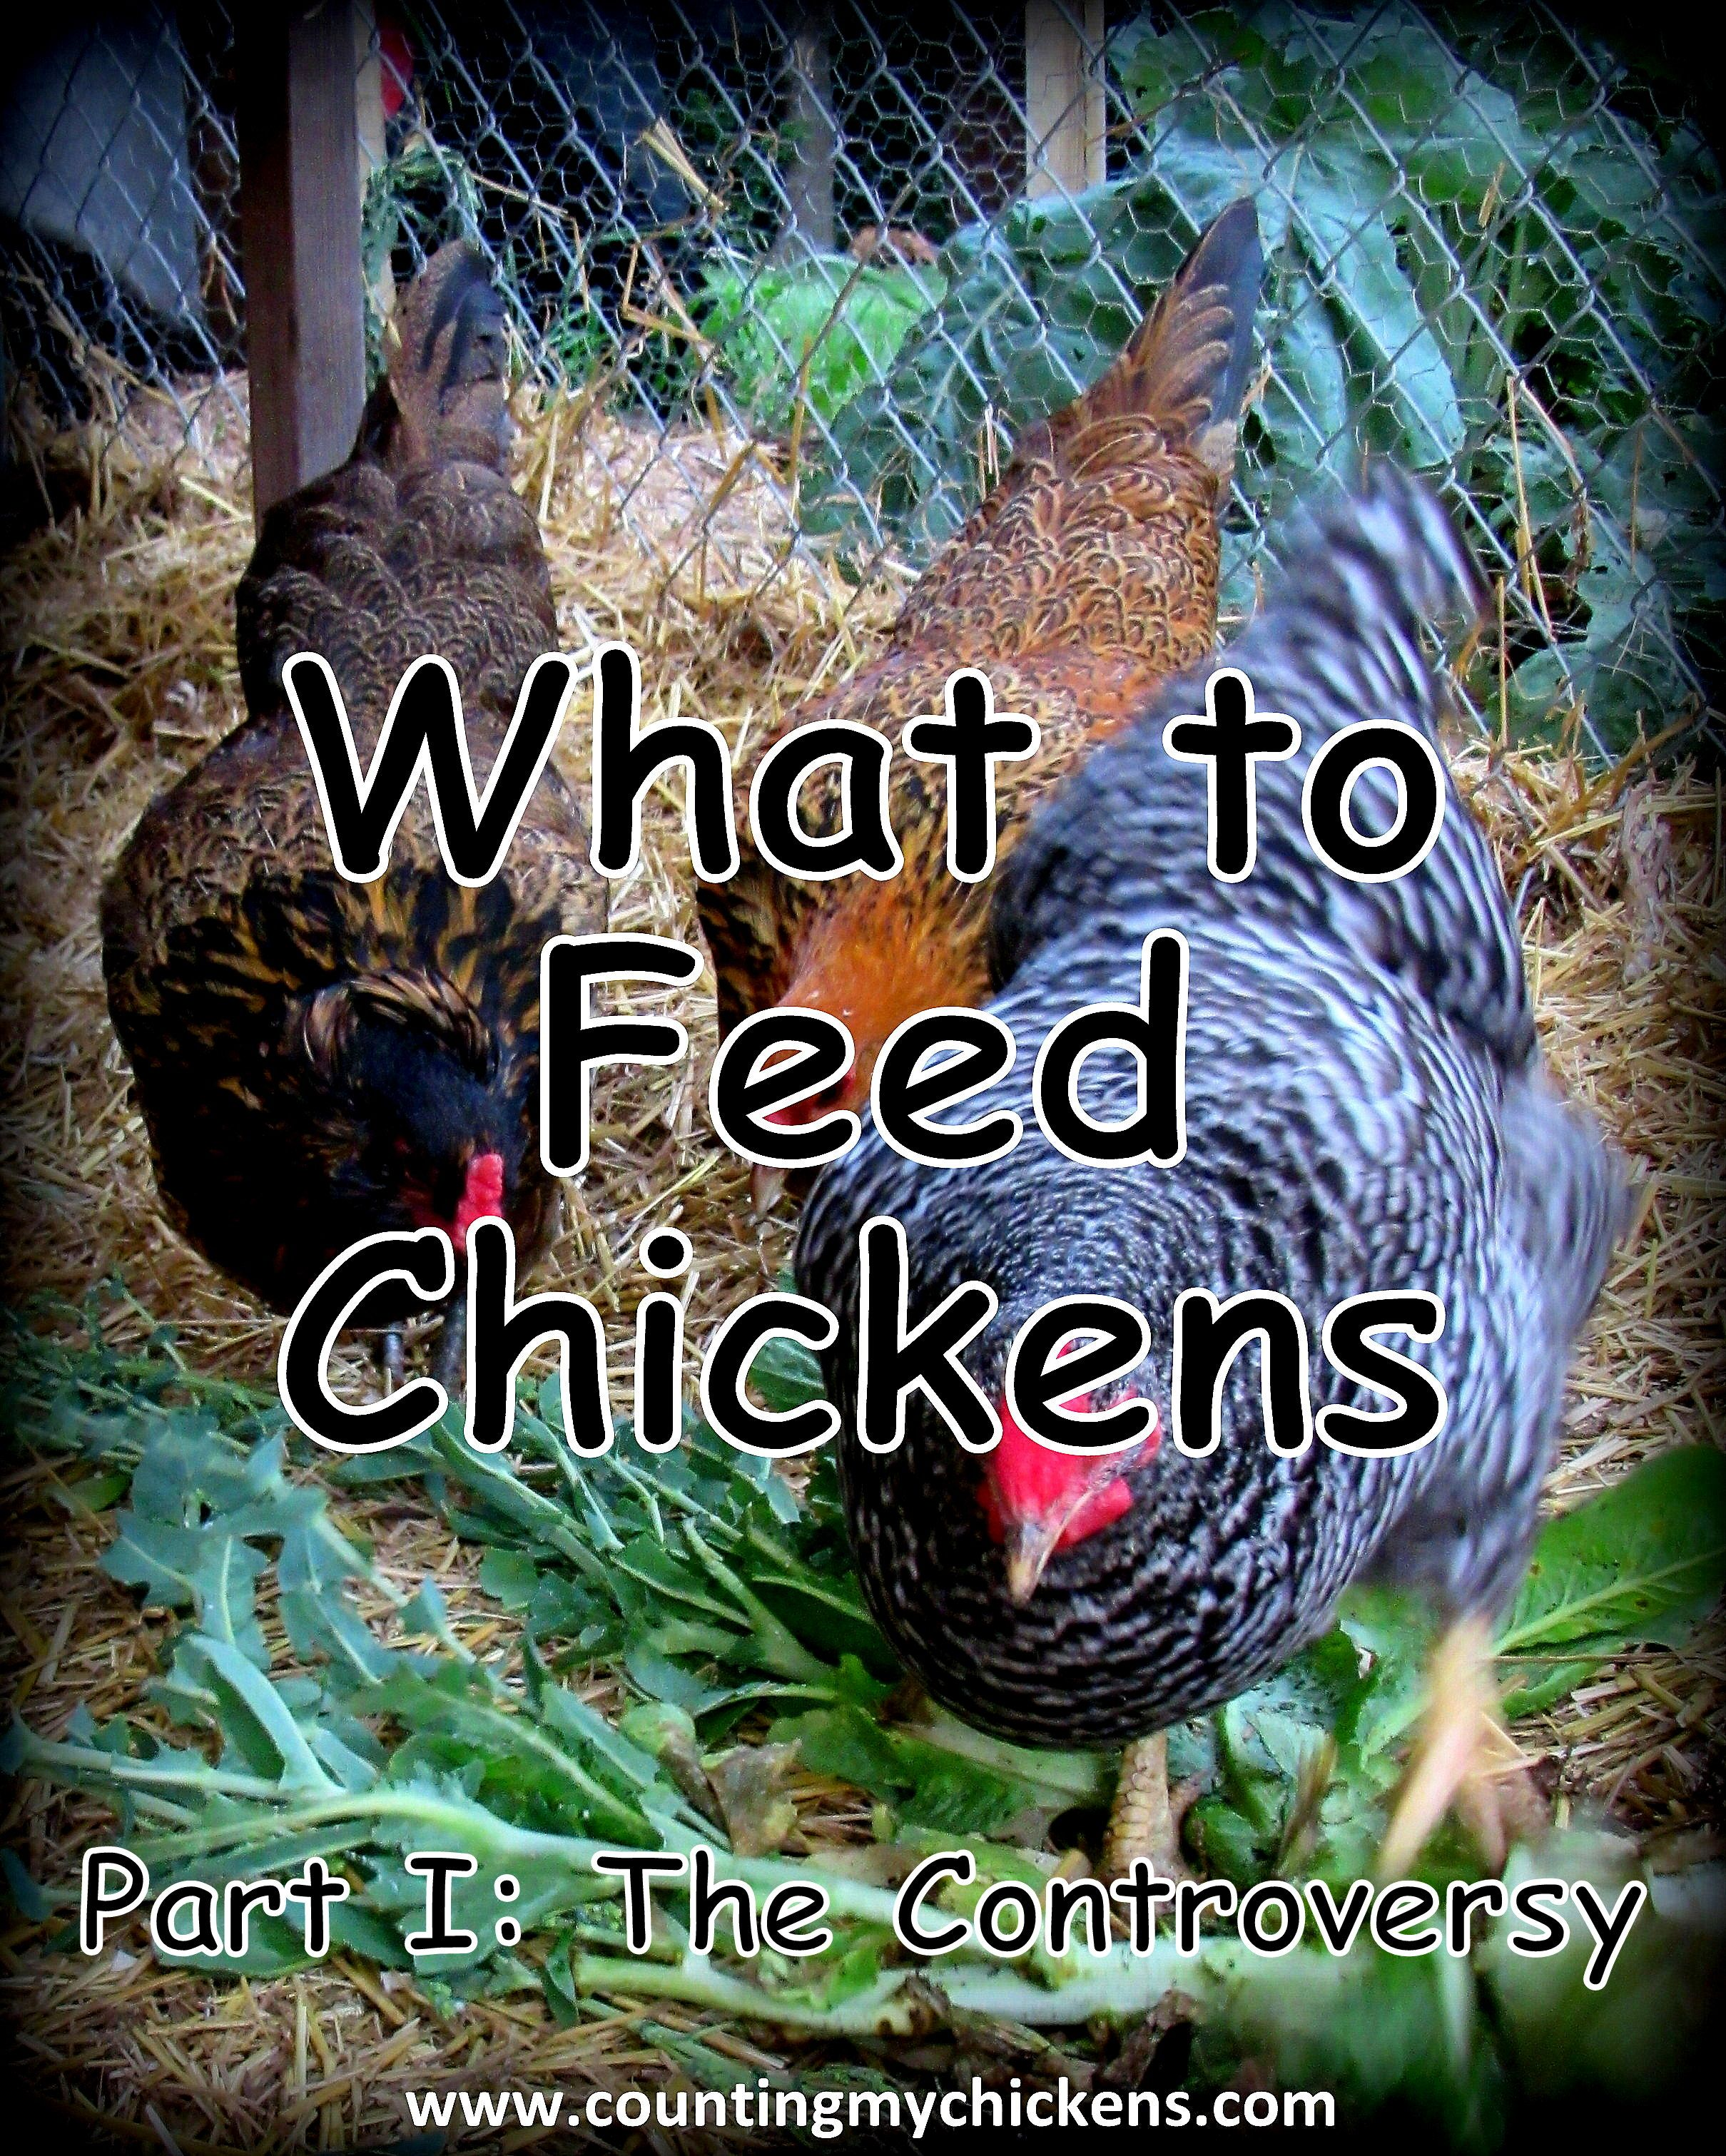 who knew that what to feed chickens could be such a button